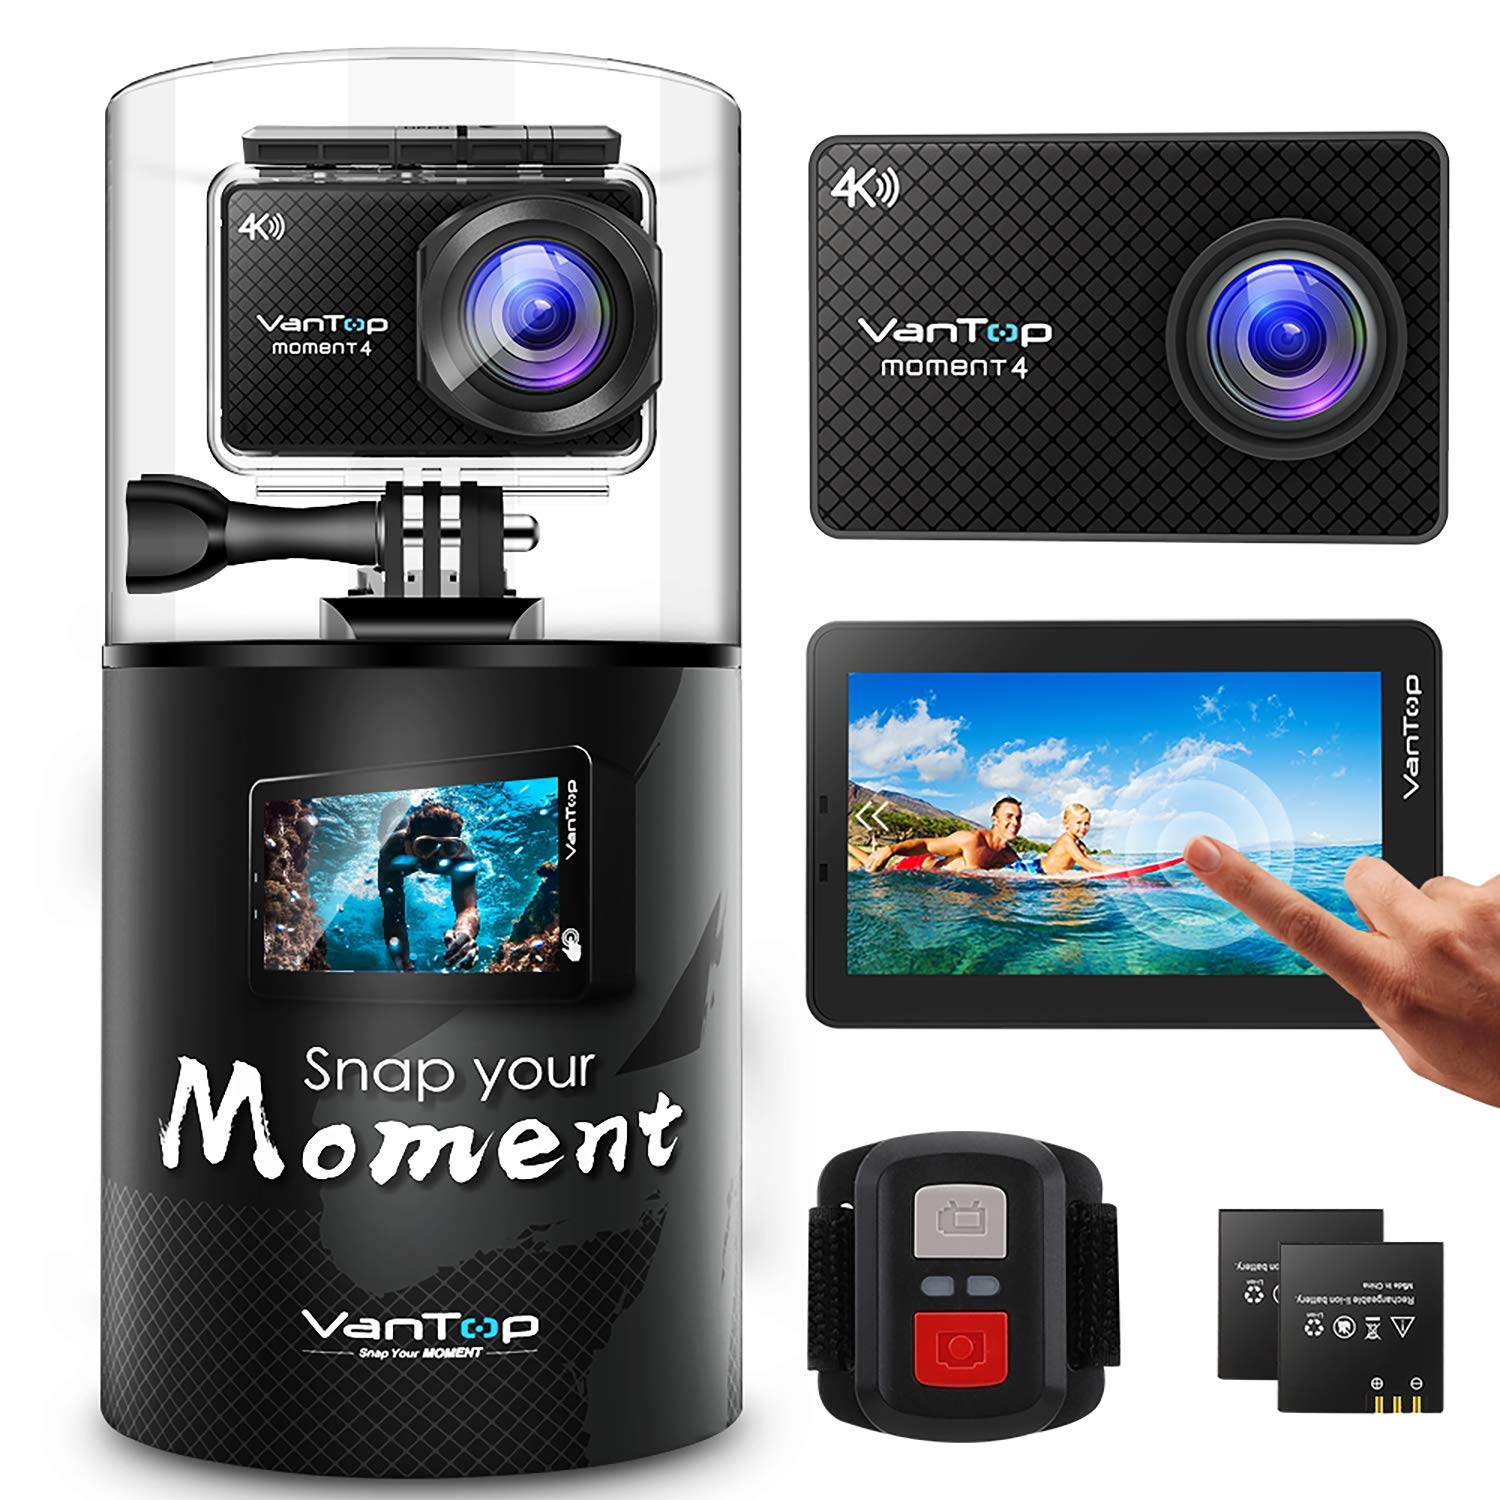 VanTop 4K Action Camera 20MP Moment 4 Underwater Waterproof Camera with EIS, Touch Screen, Remote, 170° Wide Angle WiFi Sports Cam with 2 Batteries and GoPro Accessories Kit